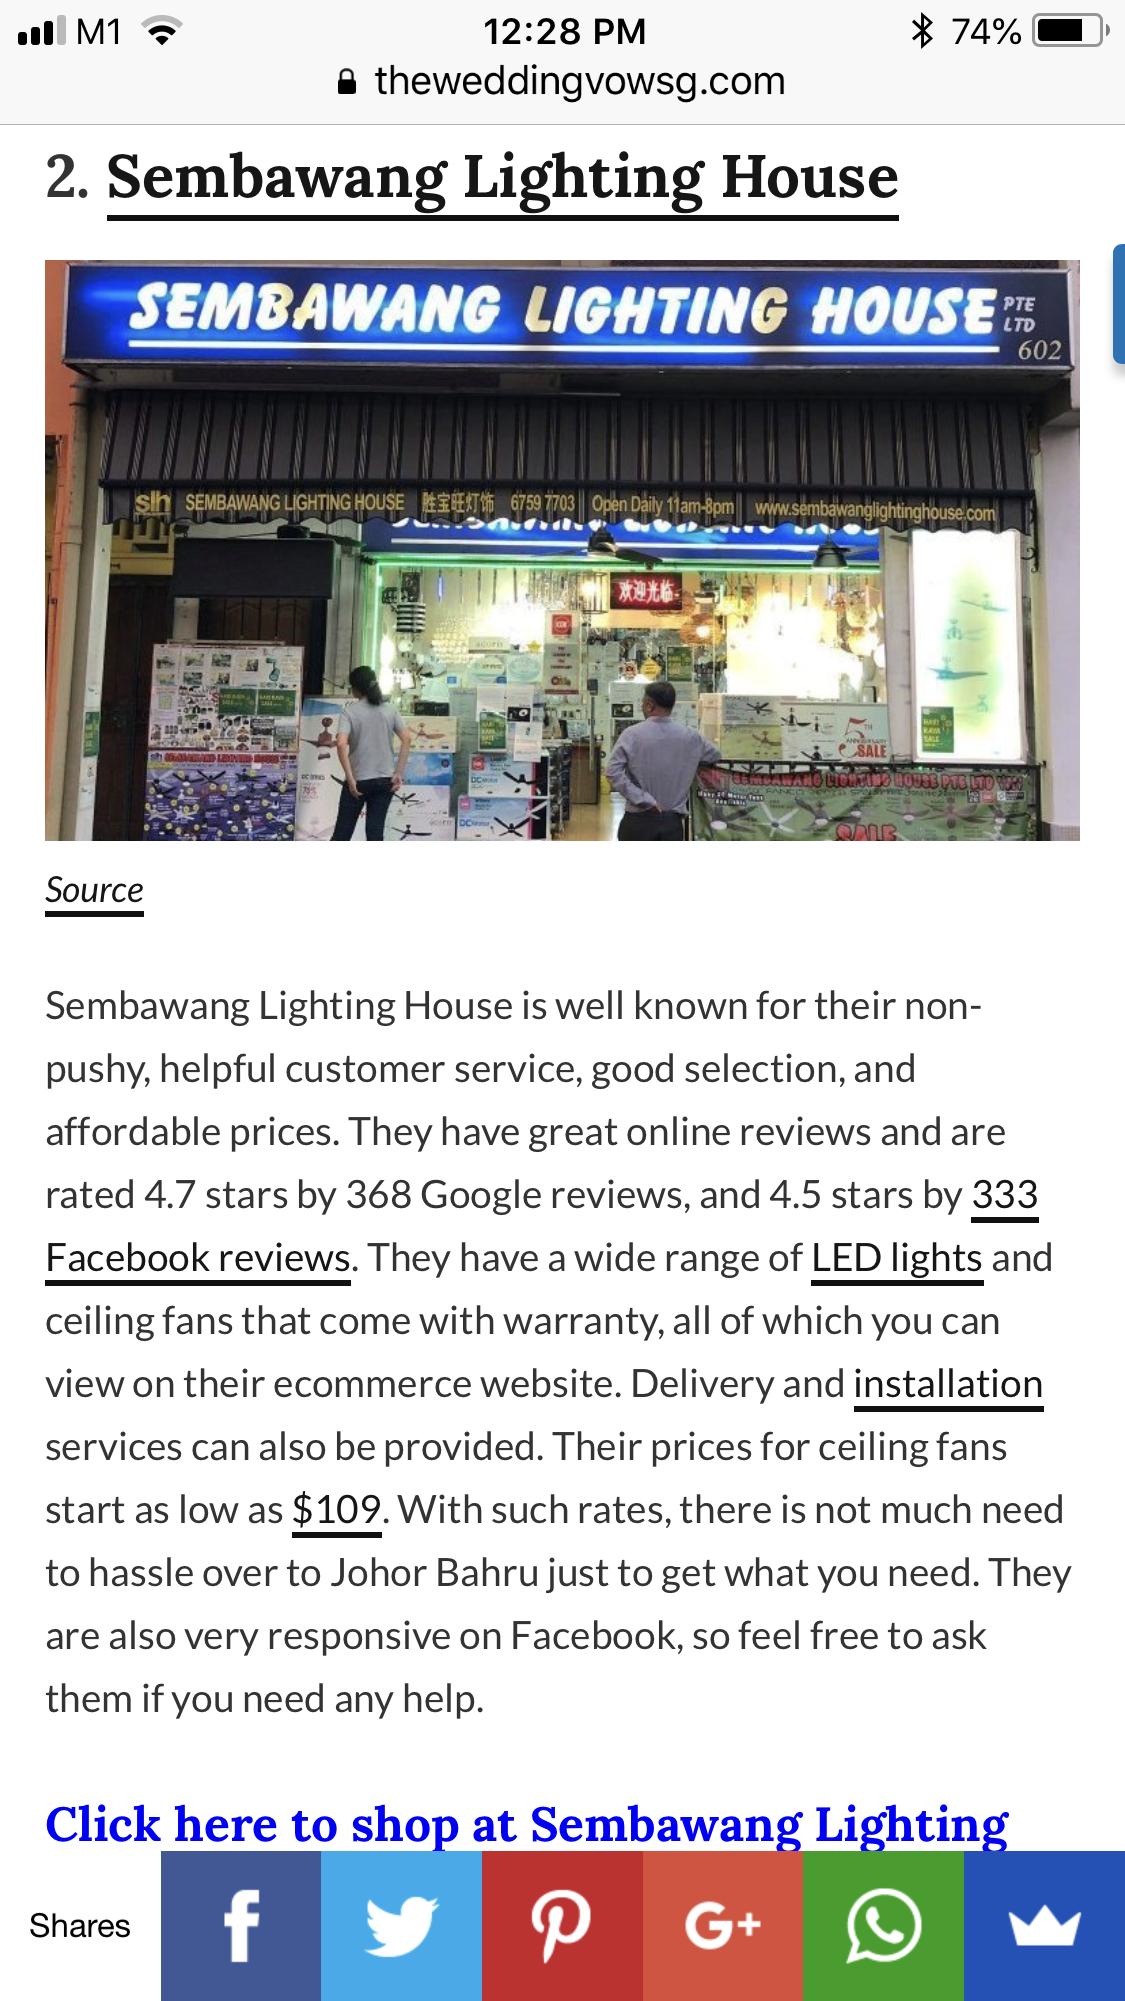 the-wedding-vow-review-sembawang-lighting-house-2.png